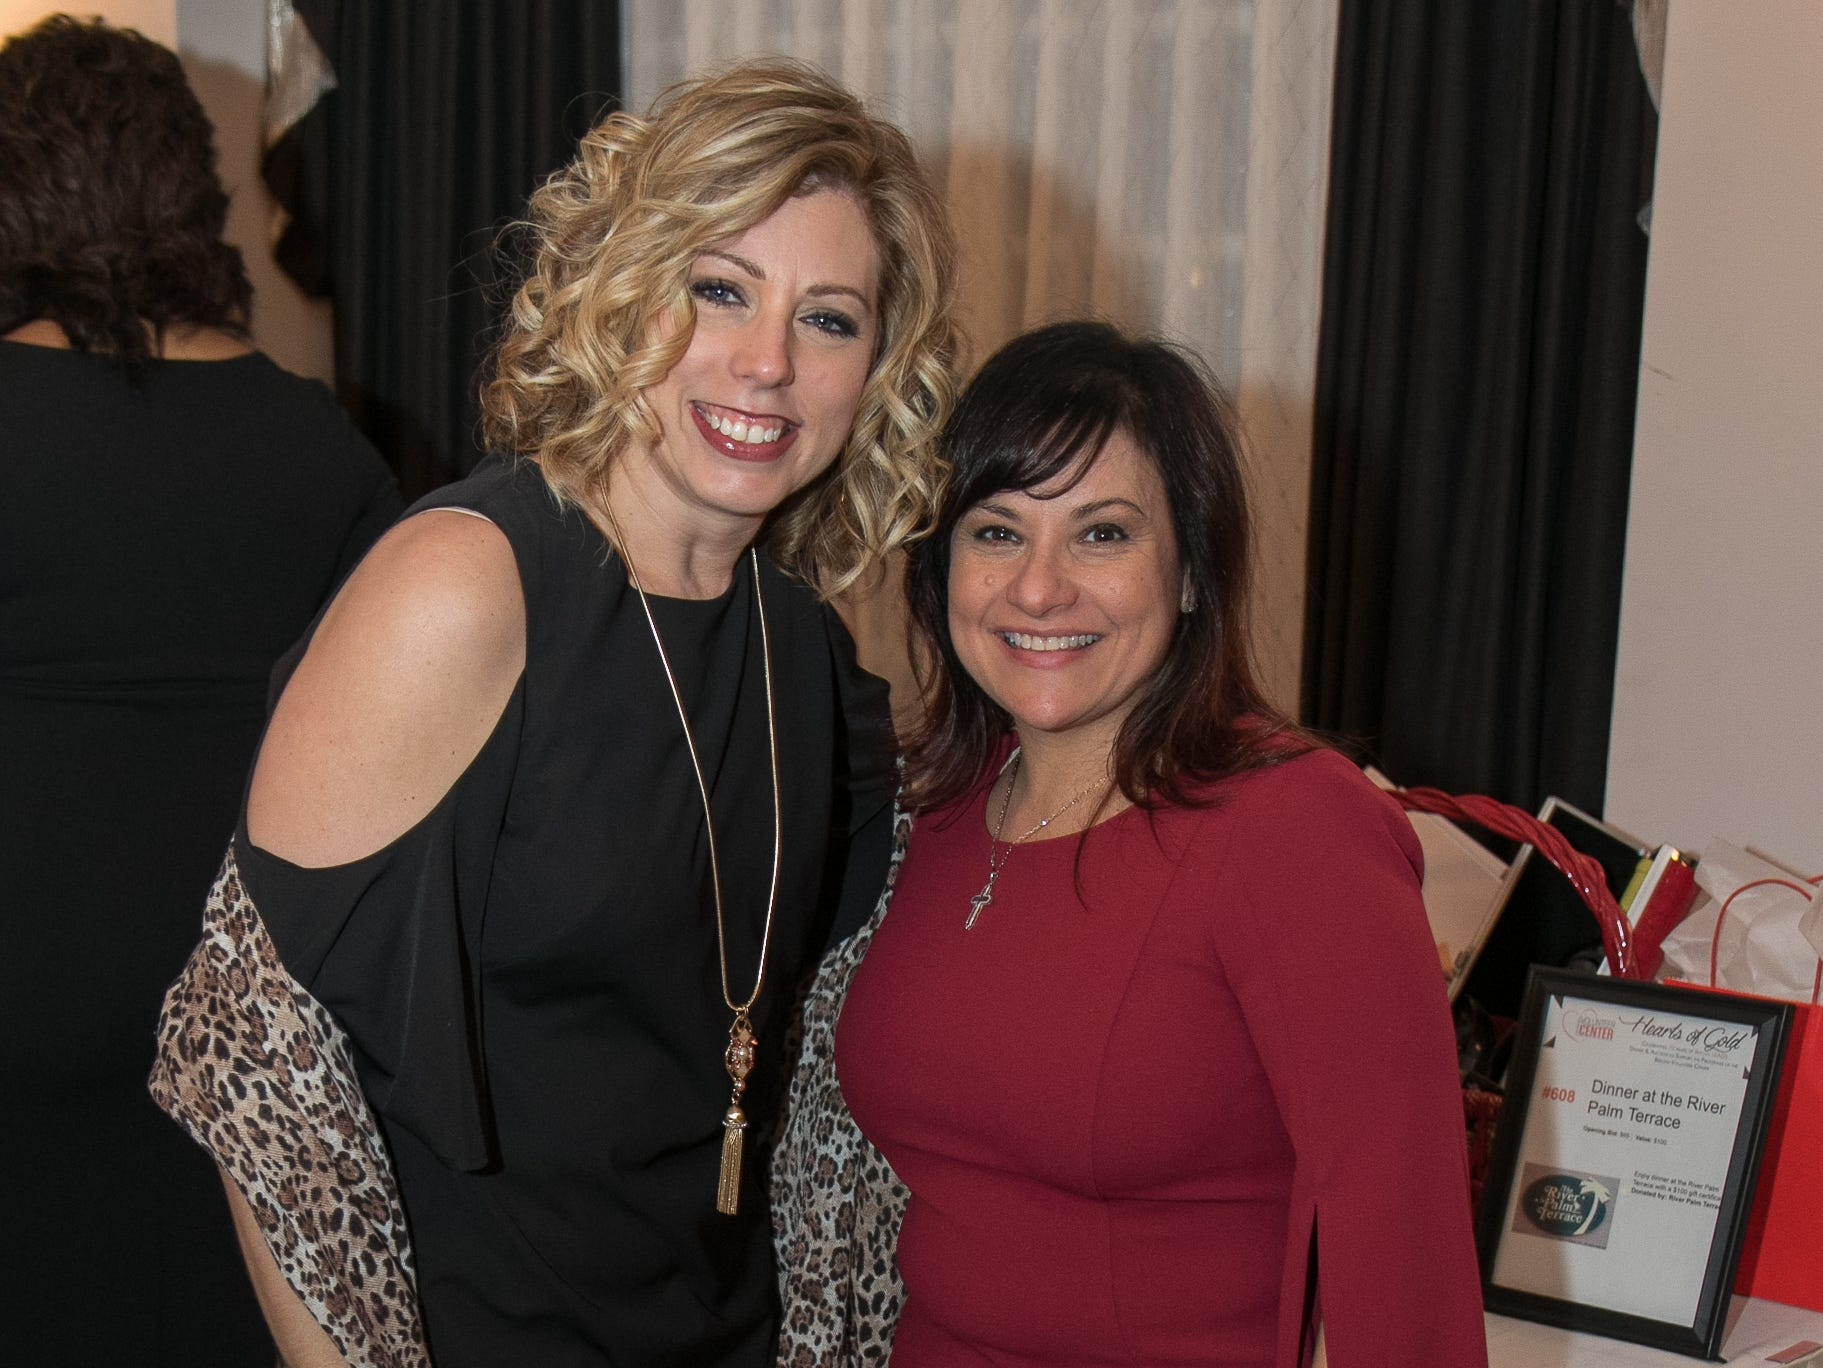 Christine Pollinger, Rosemary Klie. The Bergen Volunteer Center celebrated its 10th anniversary of the Bergen LEADS program at The Hearts of Gold Dinner and Auction at the Stony Hill Inn in Hackensack. 11/08/2018